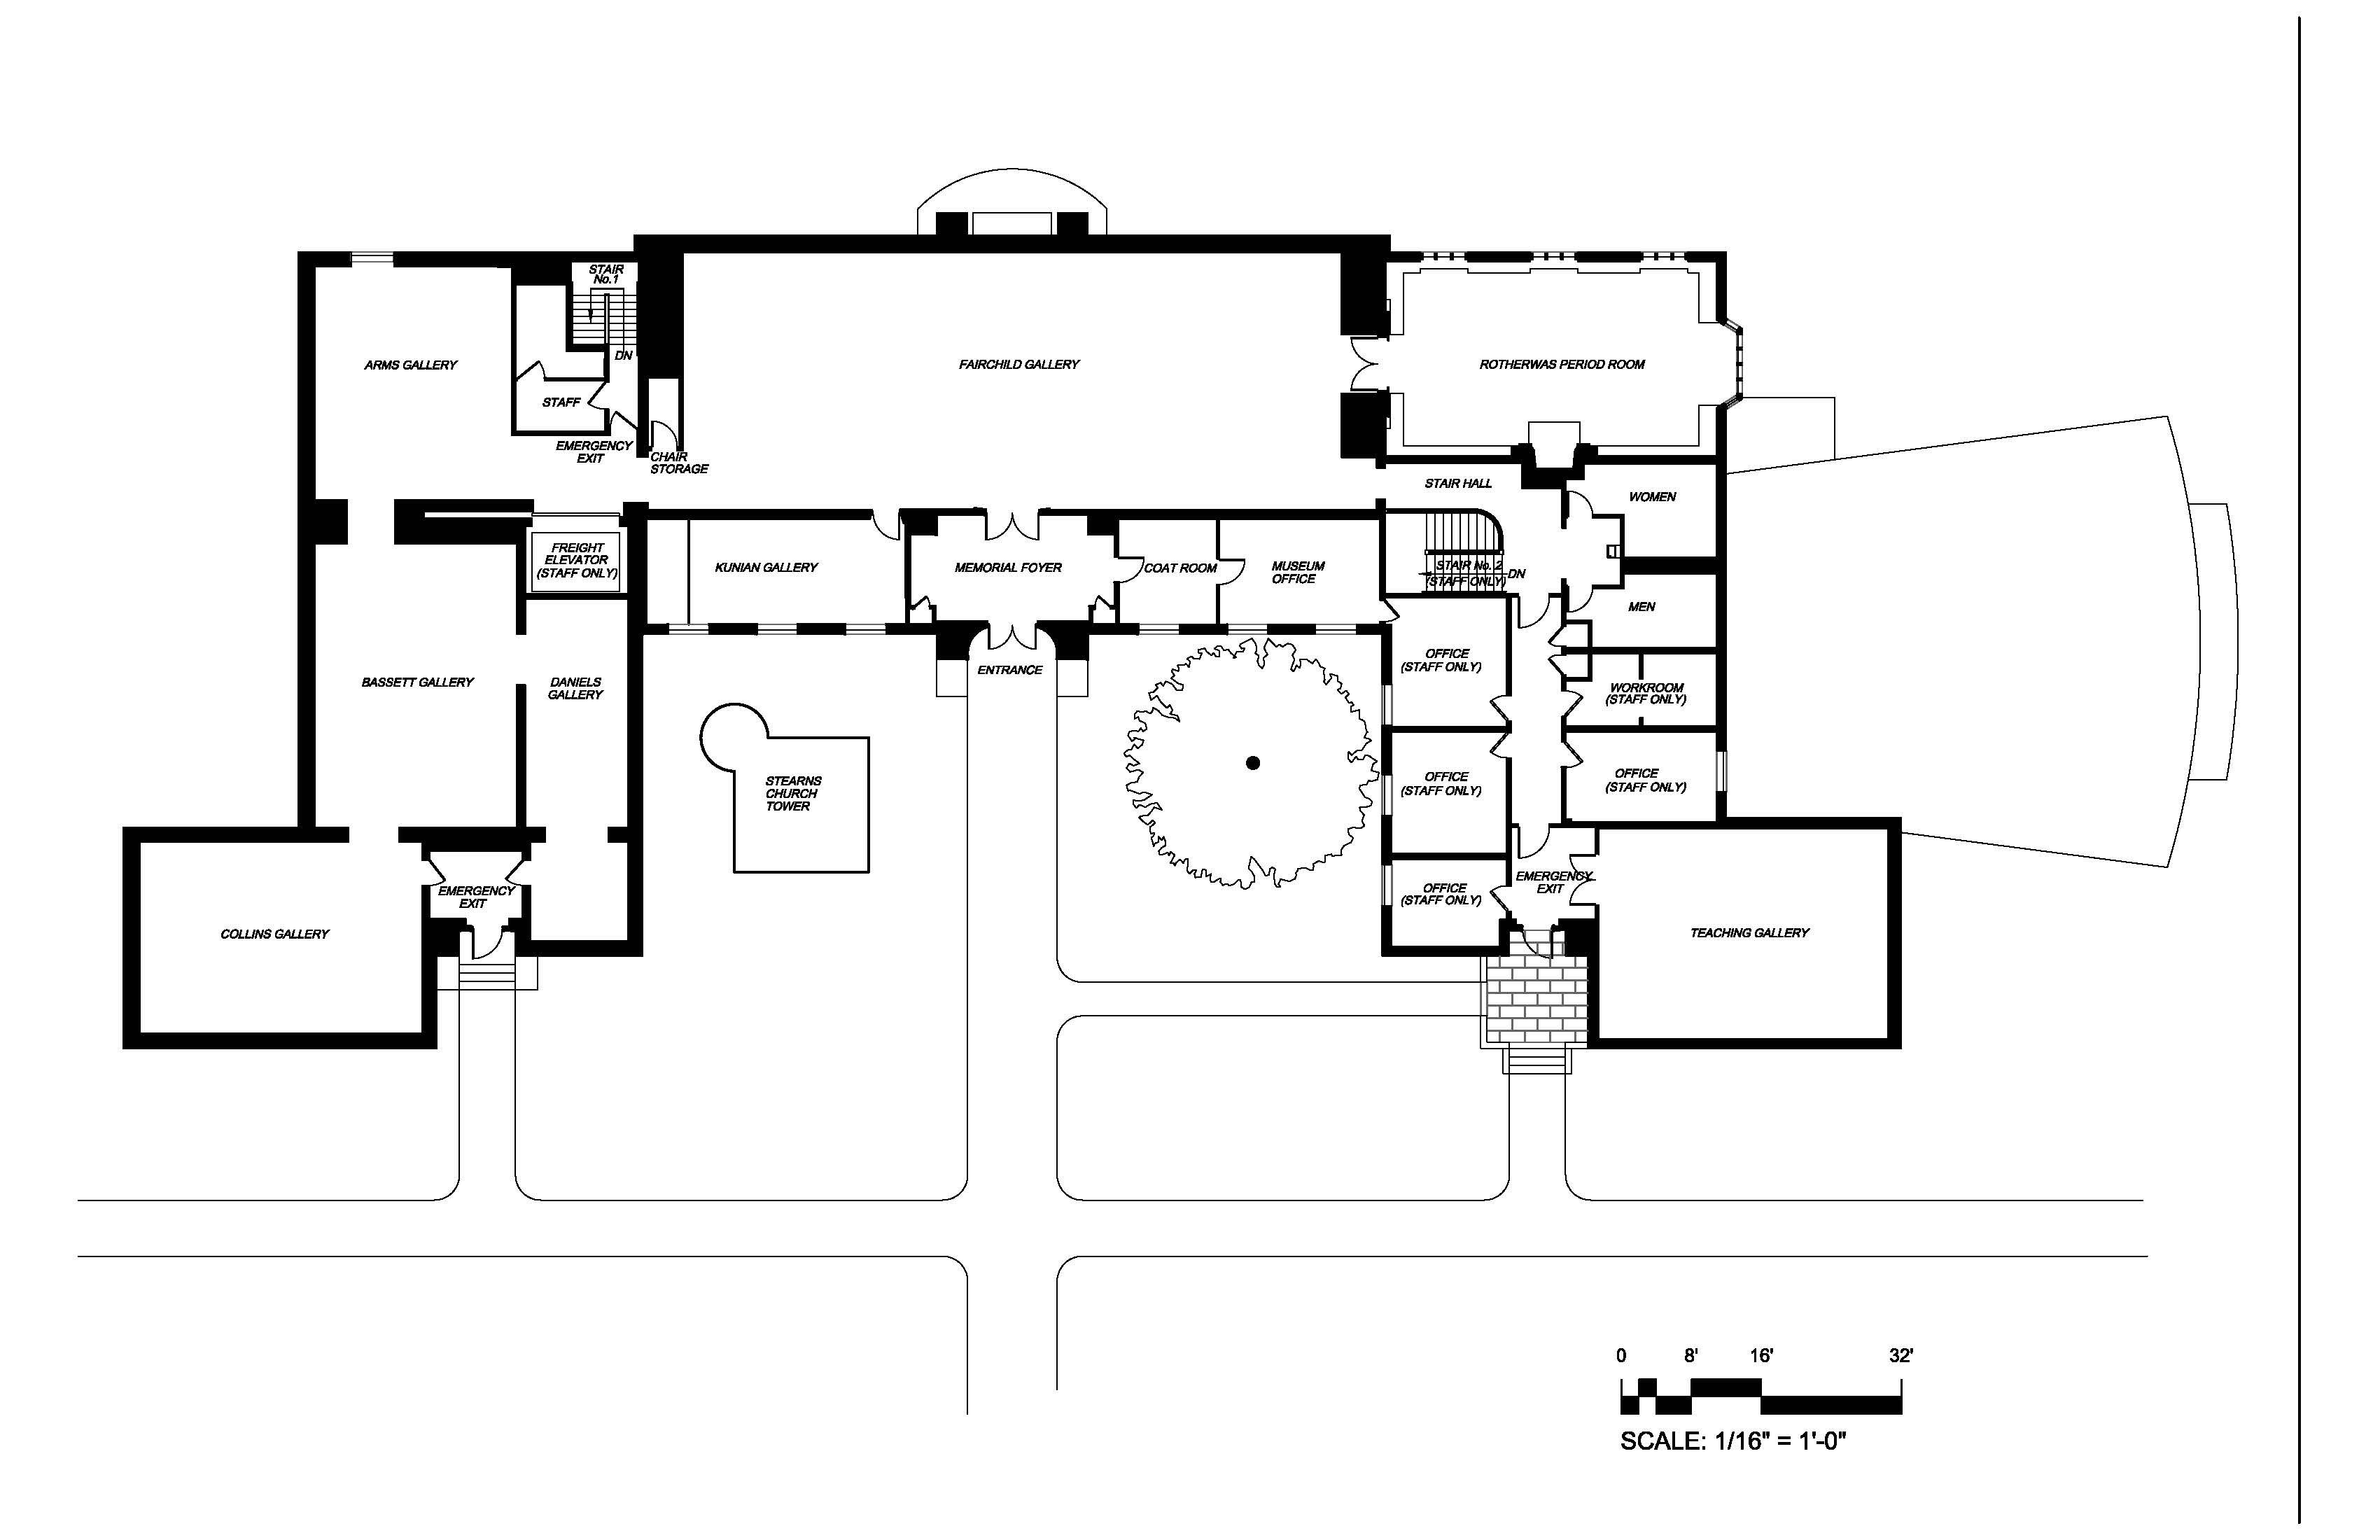 Museum_Ground_Plan-Layout1 Amherst Mead Art Museum Renovation